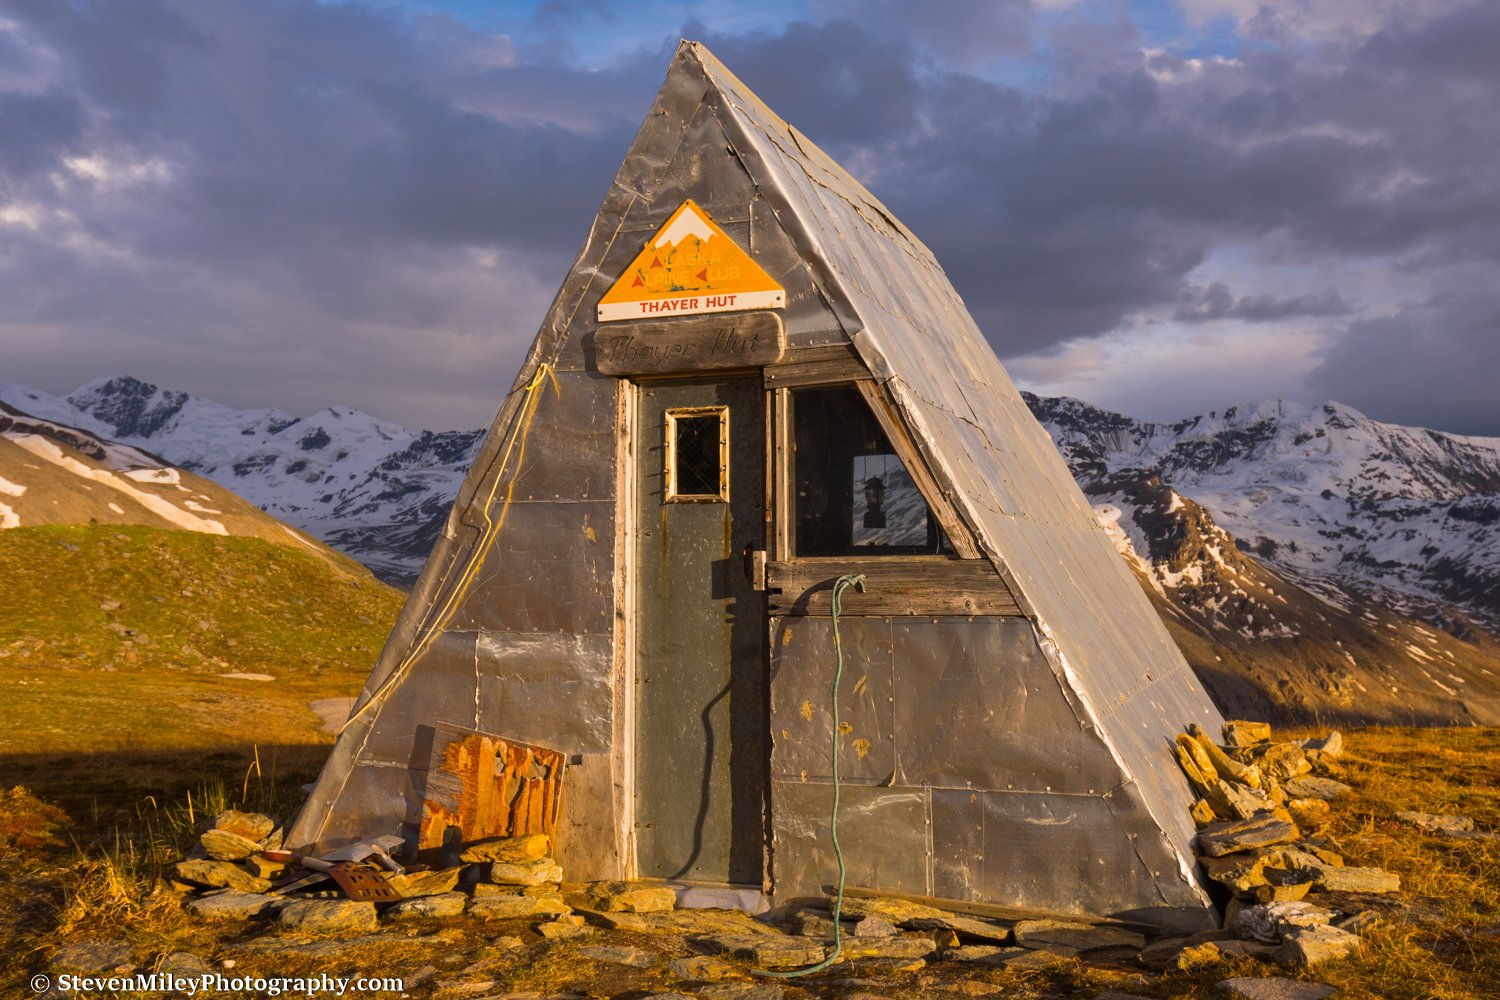 The Thayer Hut in the evening sun with the familiar lantern hanging in the window.